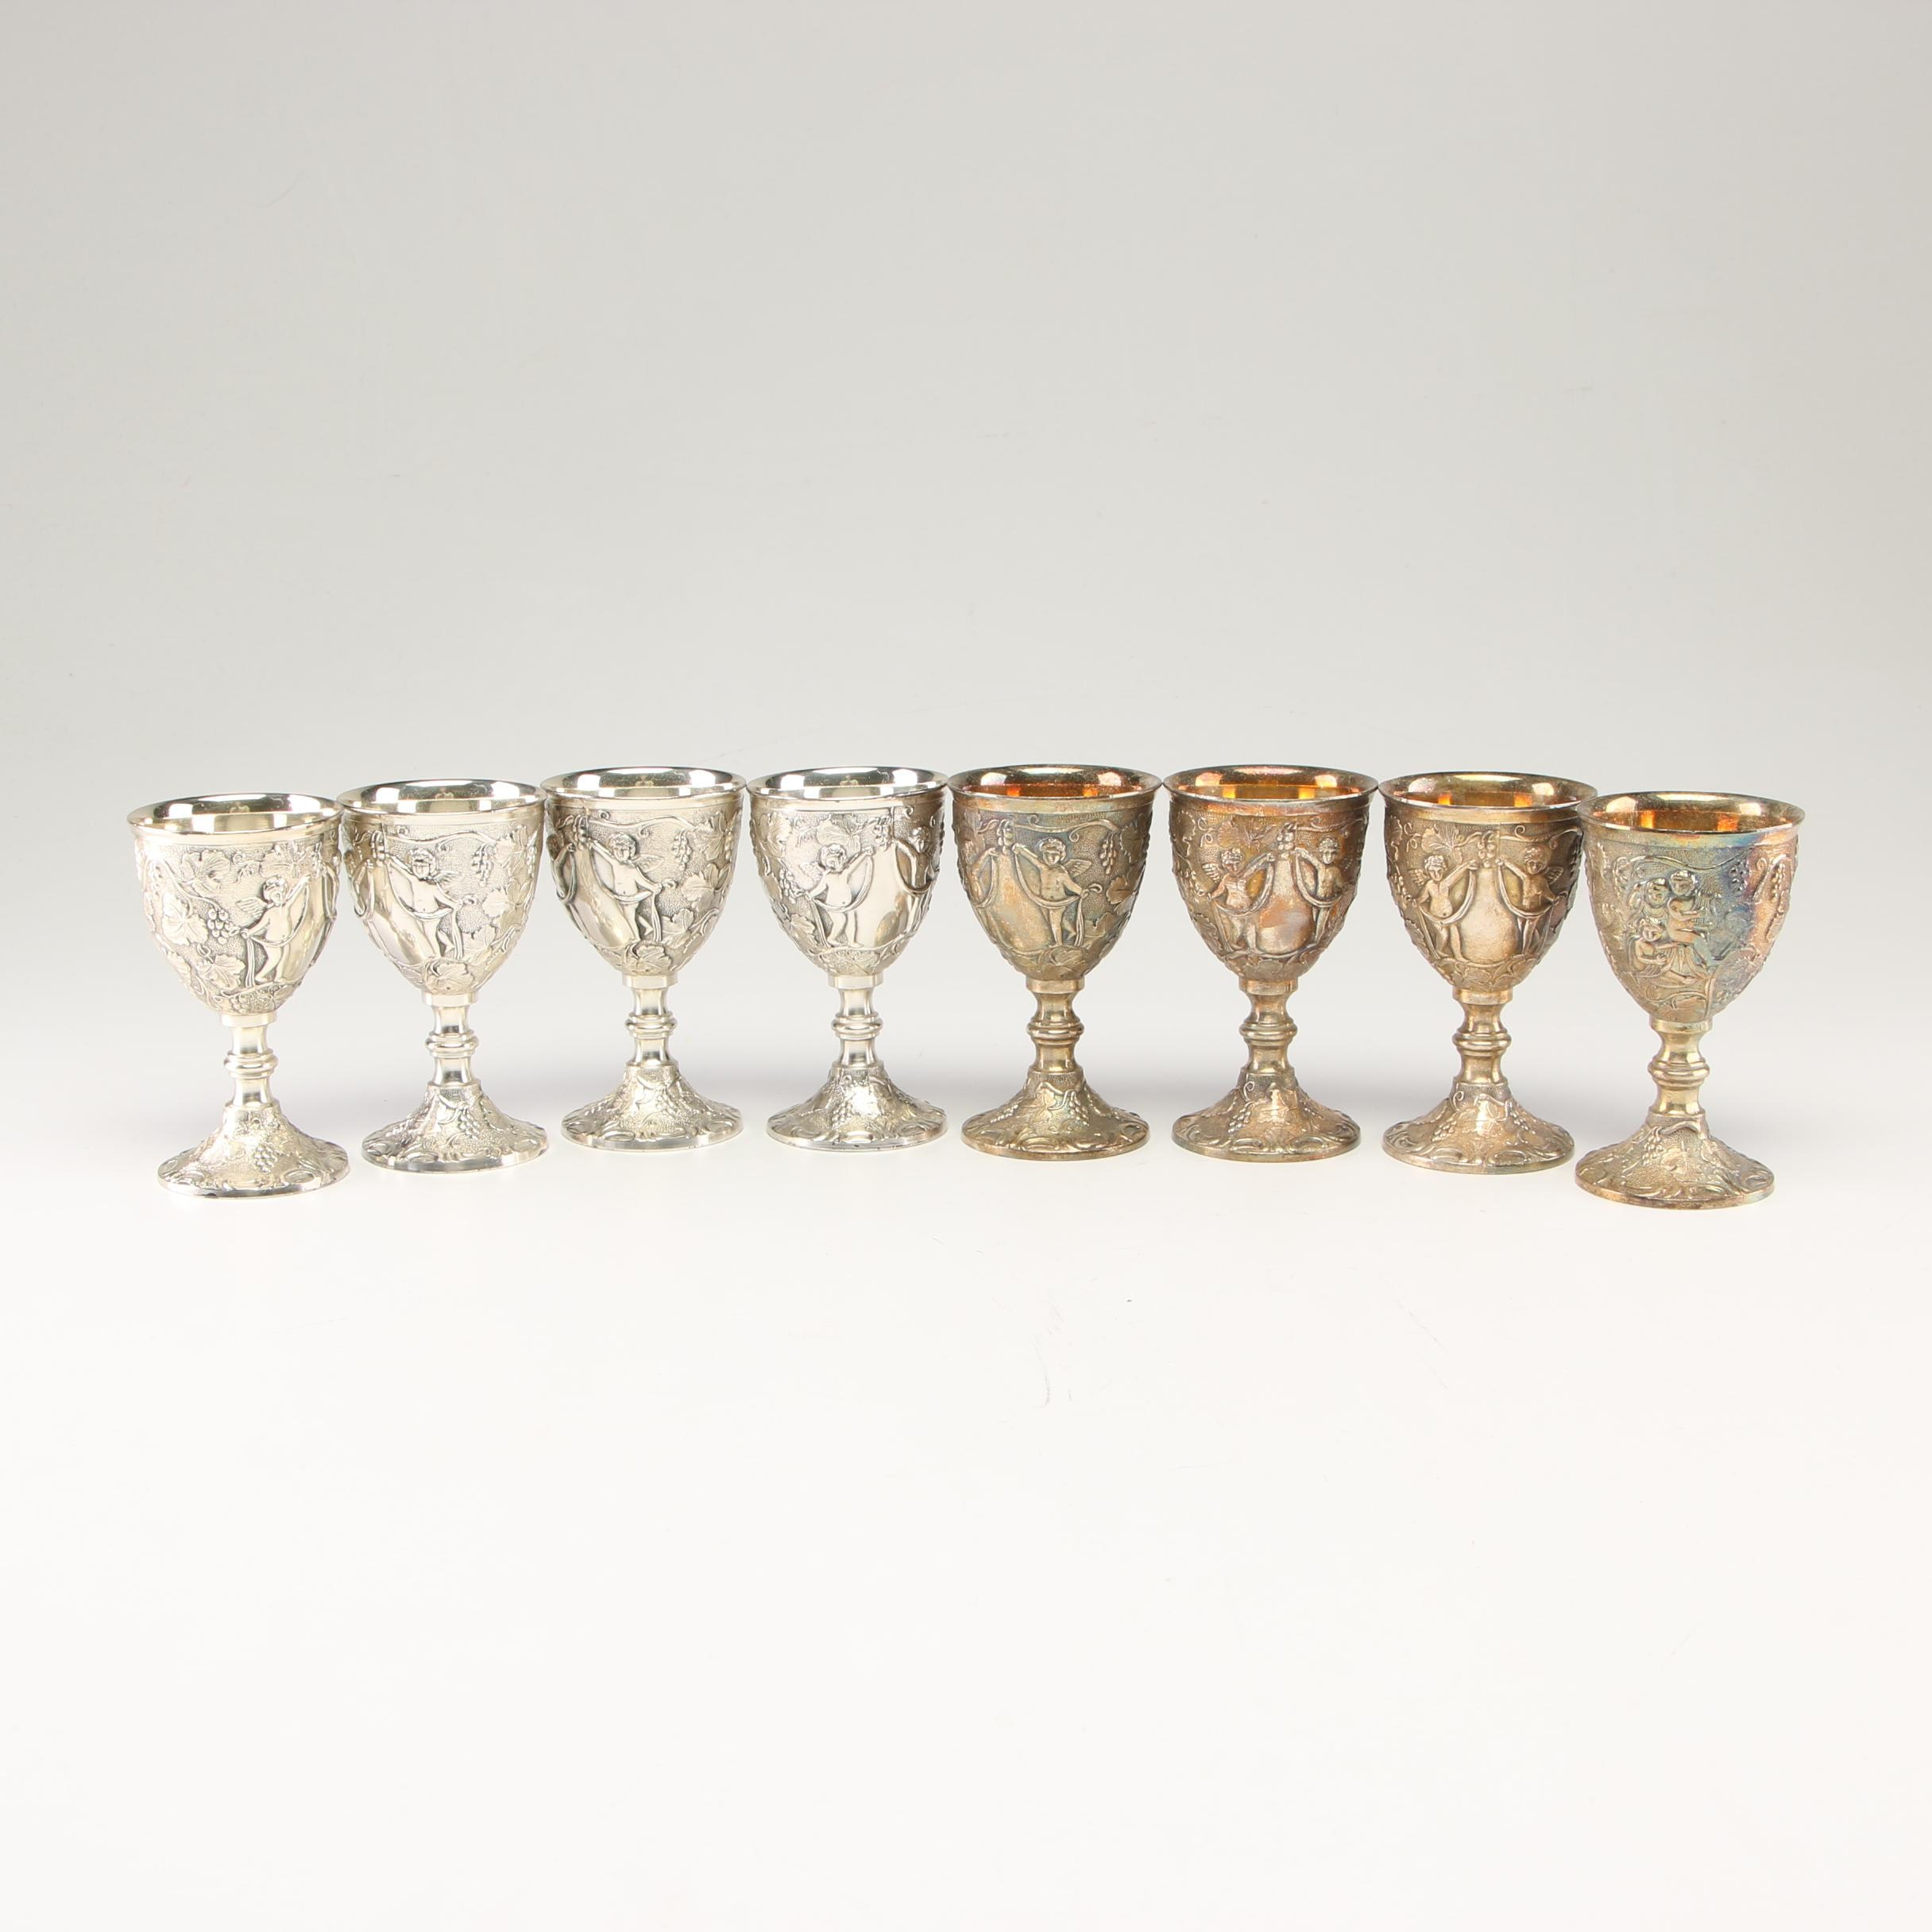 Corbell & Co. Silver Plate Cordial Glasses with Case, Mid to Late 20th Century